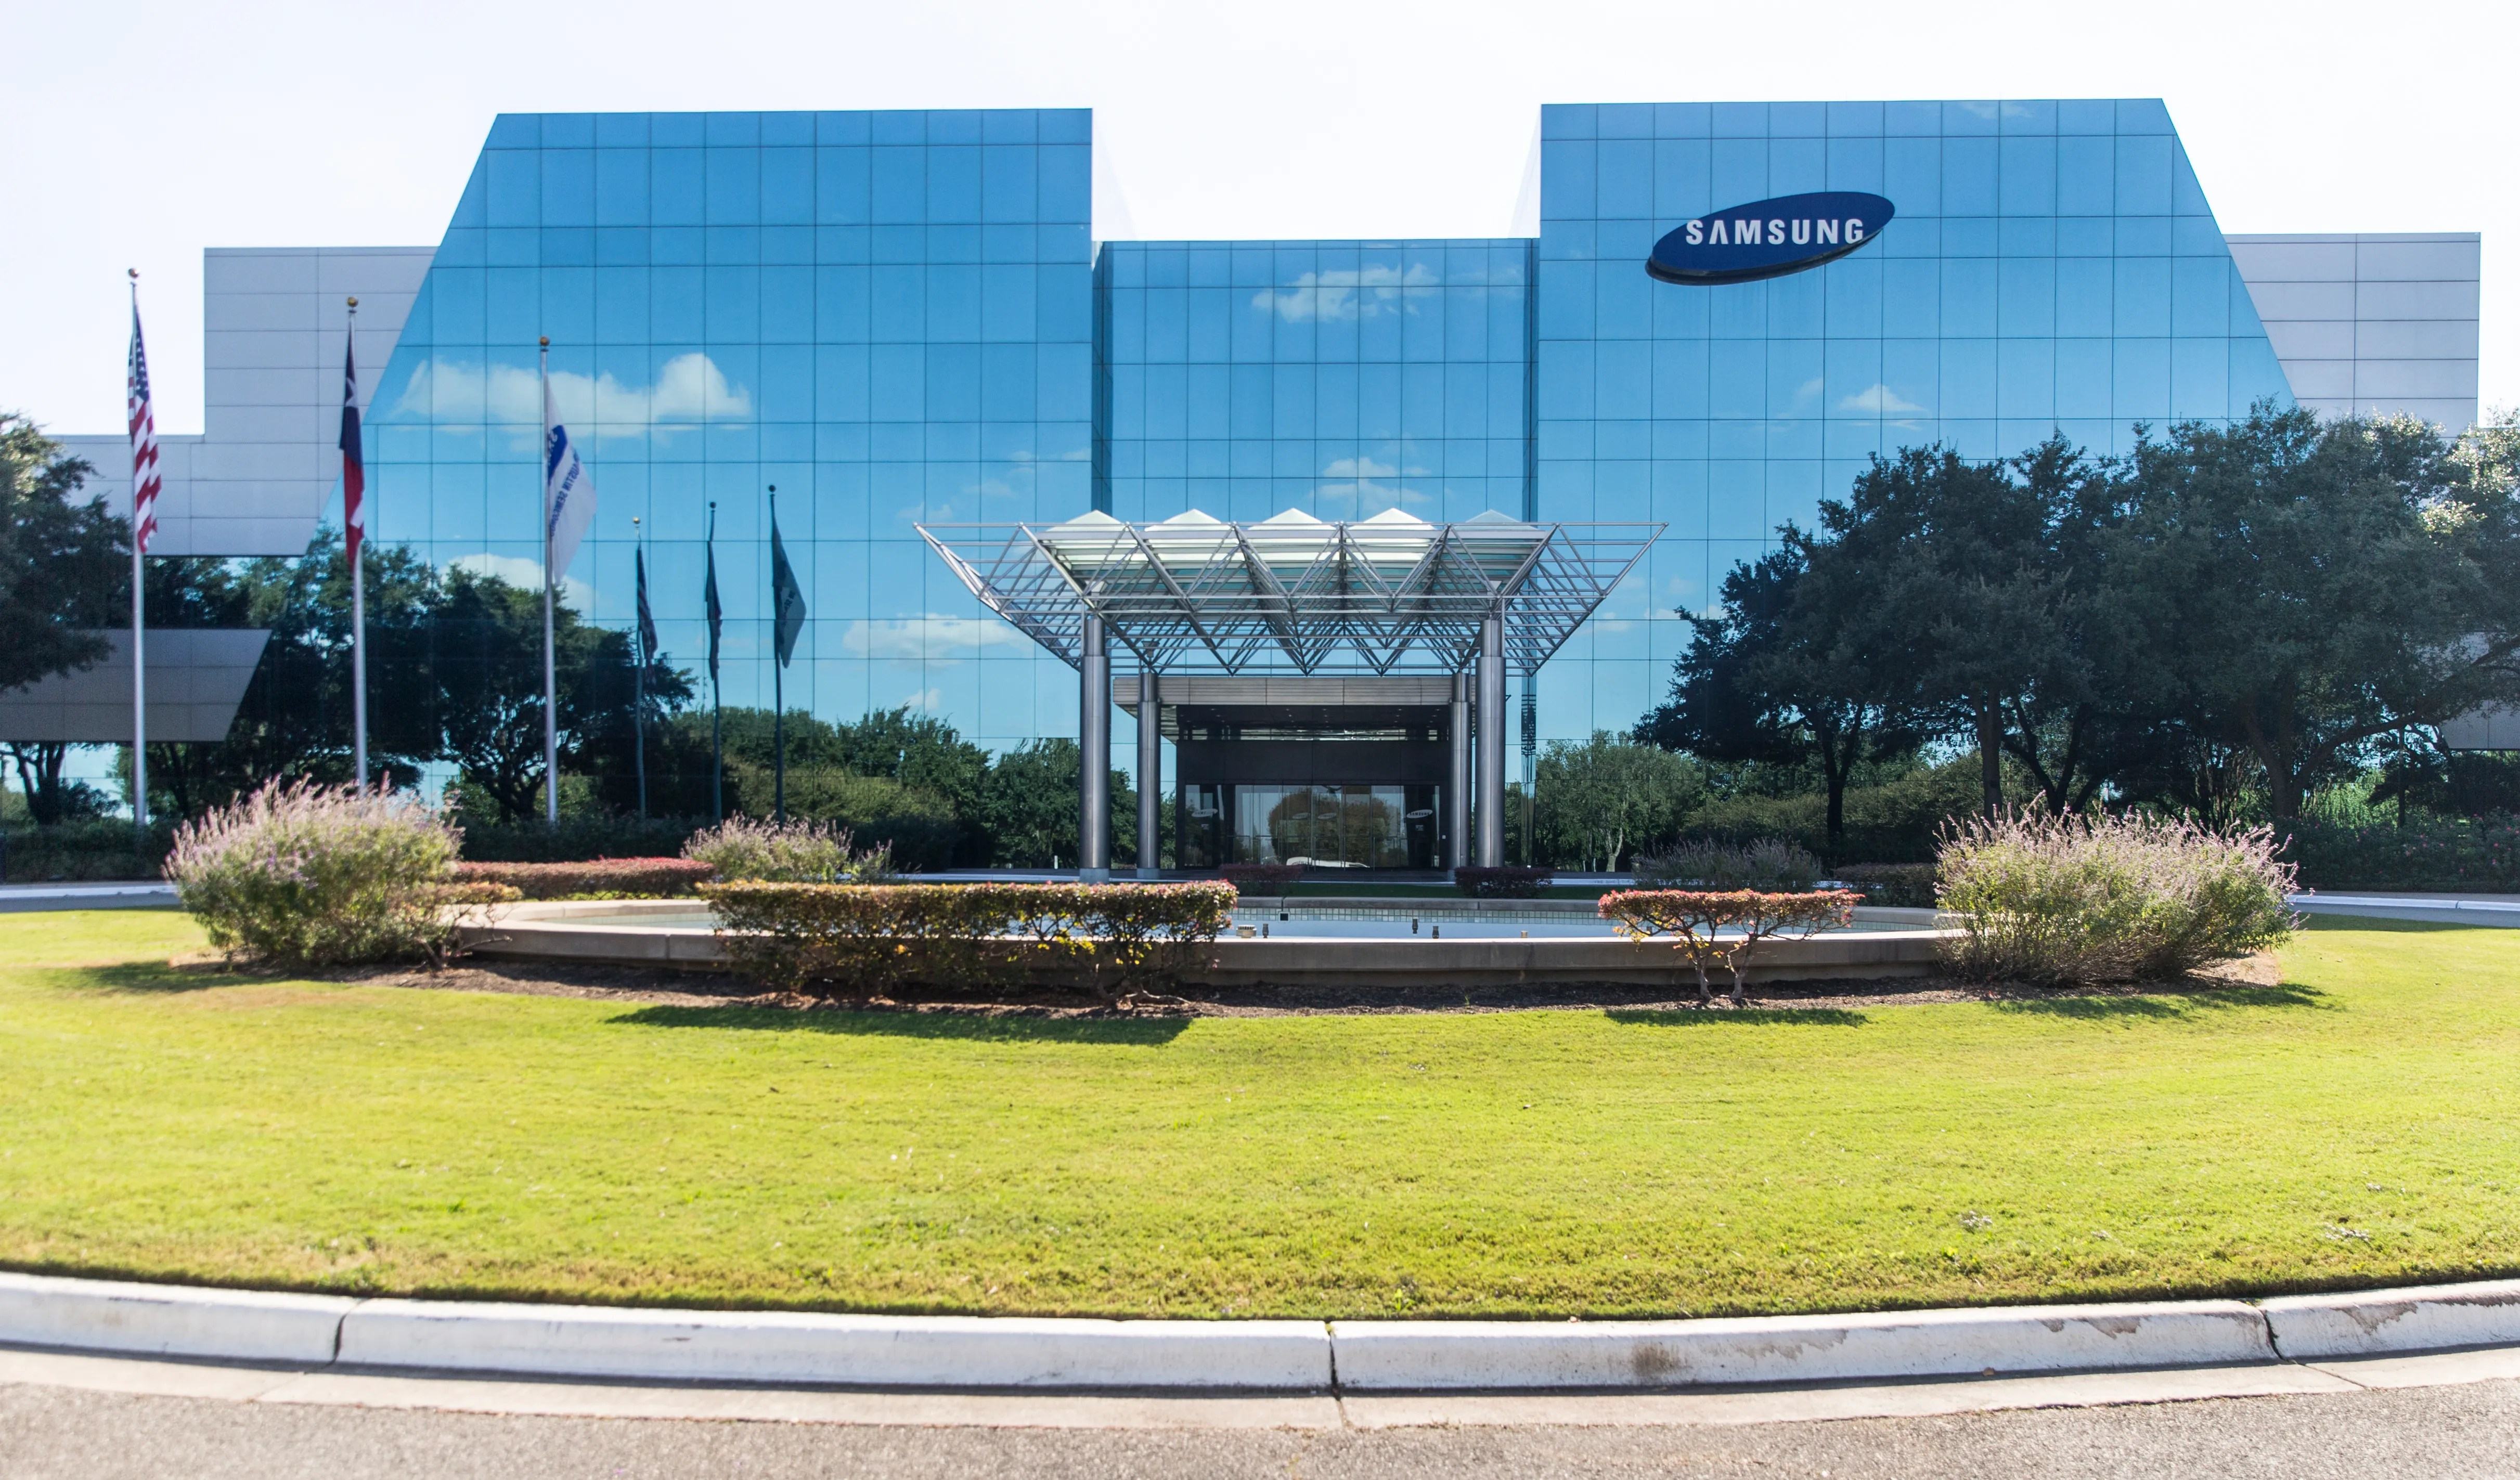 Samsung has a significant presence in Austin and plans to build a solar power project in central Texas.